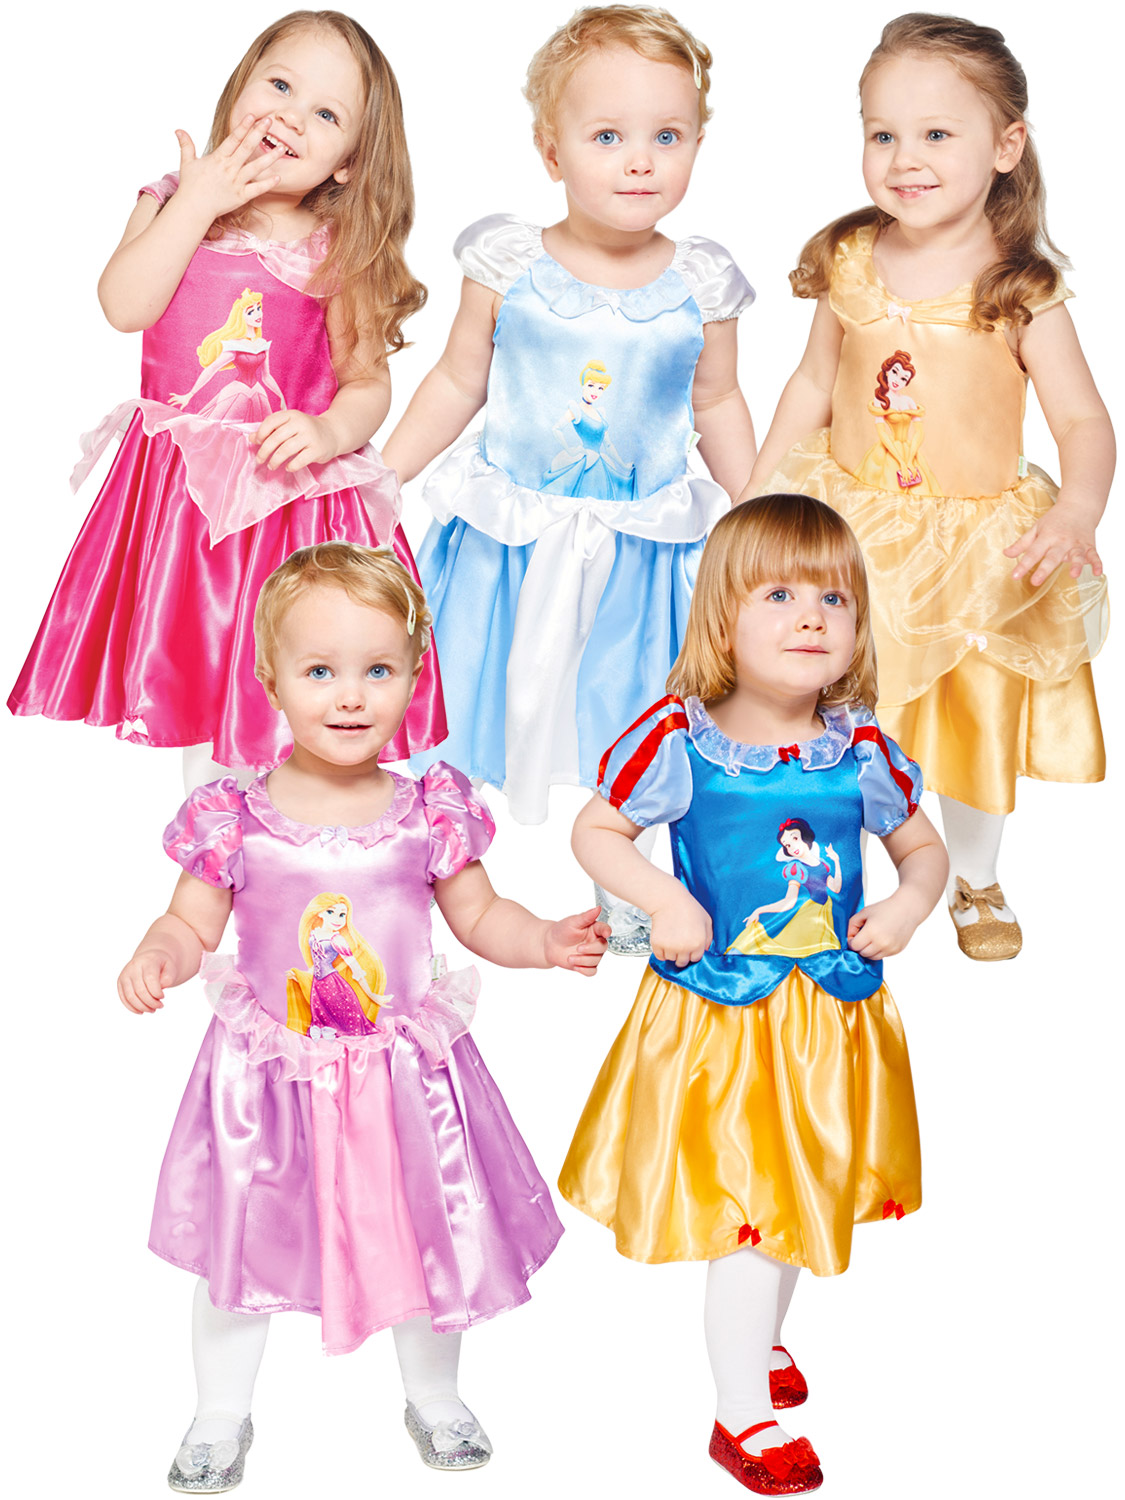 a0013ba2c ... Disney Princess costumes are from an award winning dress up design  company Travis Designs and make an ideal gift for anyone with a baby or  toddler.